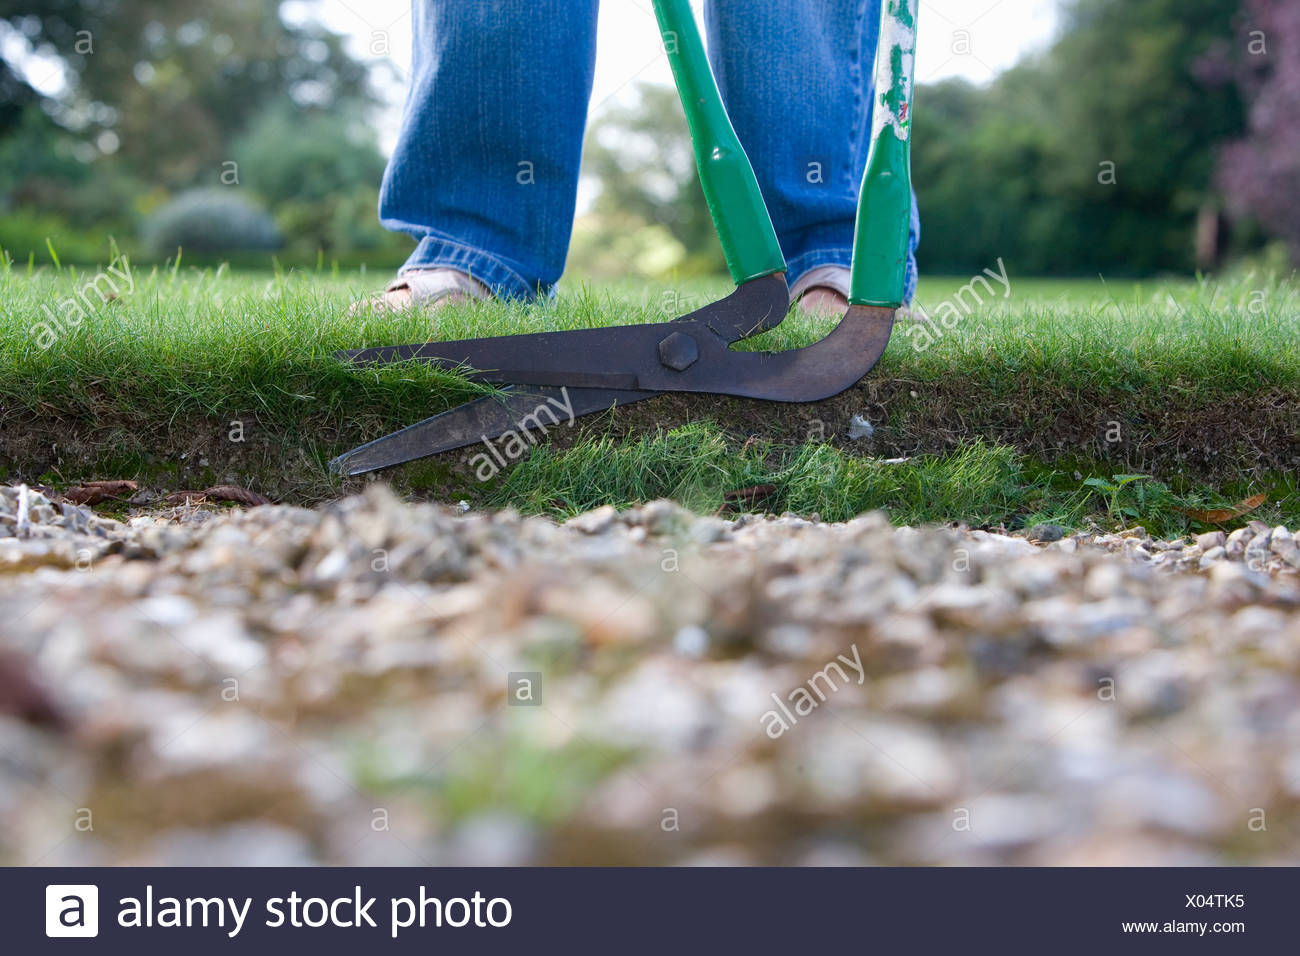 Man trimming edge of grass with garden tool, low section - Stock Image